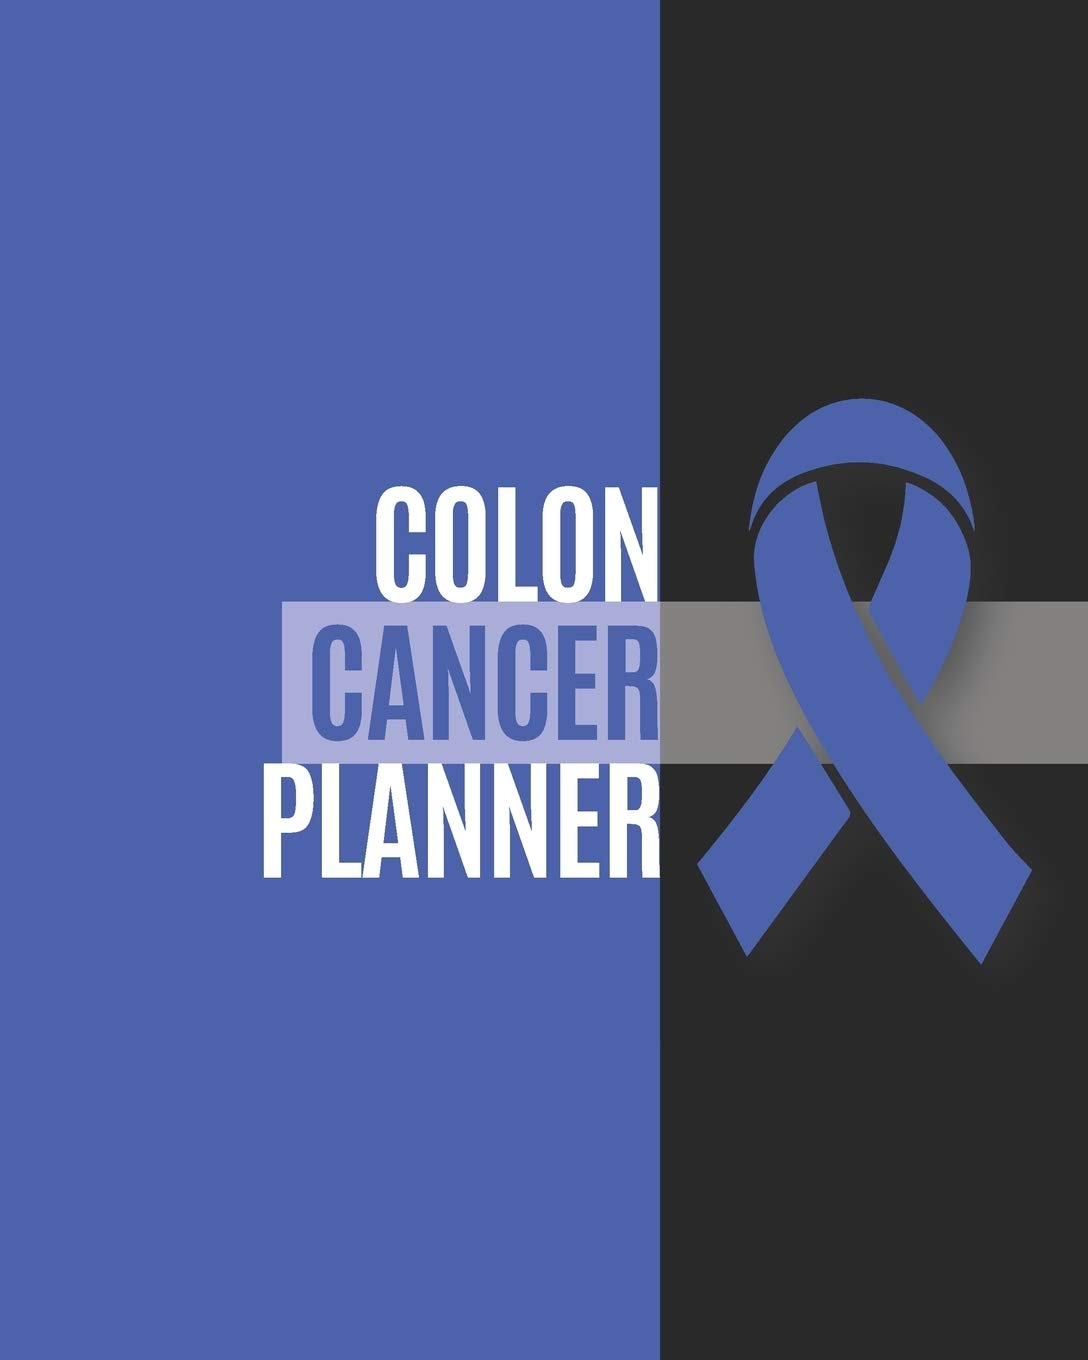 Colon Cancer Planner Yearly Weekly Organizer To Do Lists Notes Colon Cancer Journal Notebook 8x10 Colon Cancer Books Colon Cancer Gifts Colon Cancer Awareness Products Publishing Royal Ribbon 9781679239878 Amazon Com Books